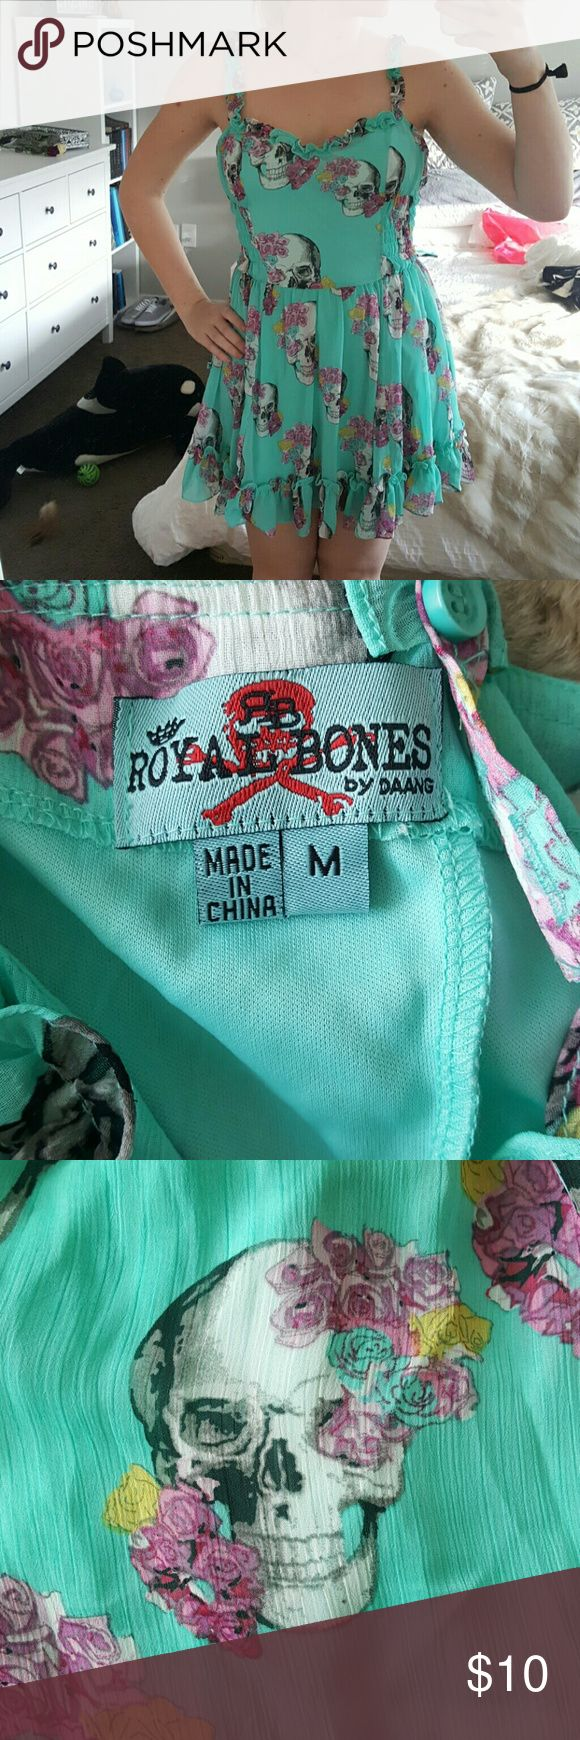 Royal Bones floral skull dress From Hot Topic. Worn once, like new. Zipper closure in the back and elastic on the sides. Royal Bones Dresses Midi